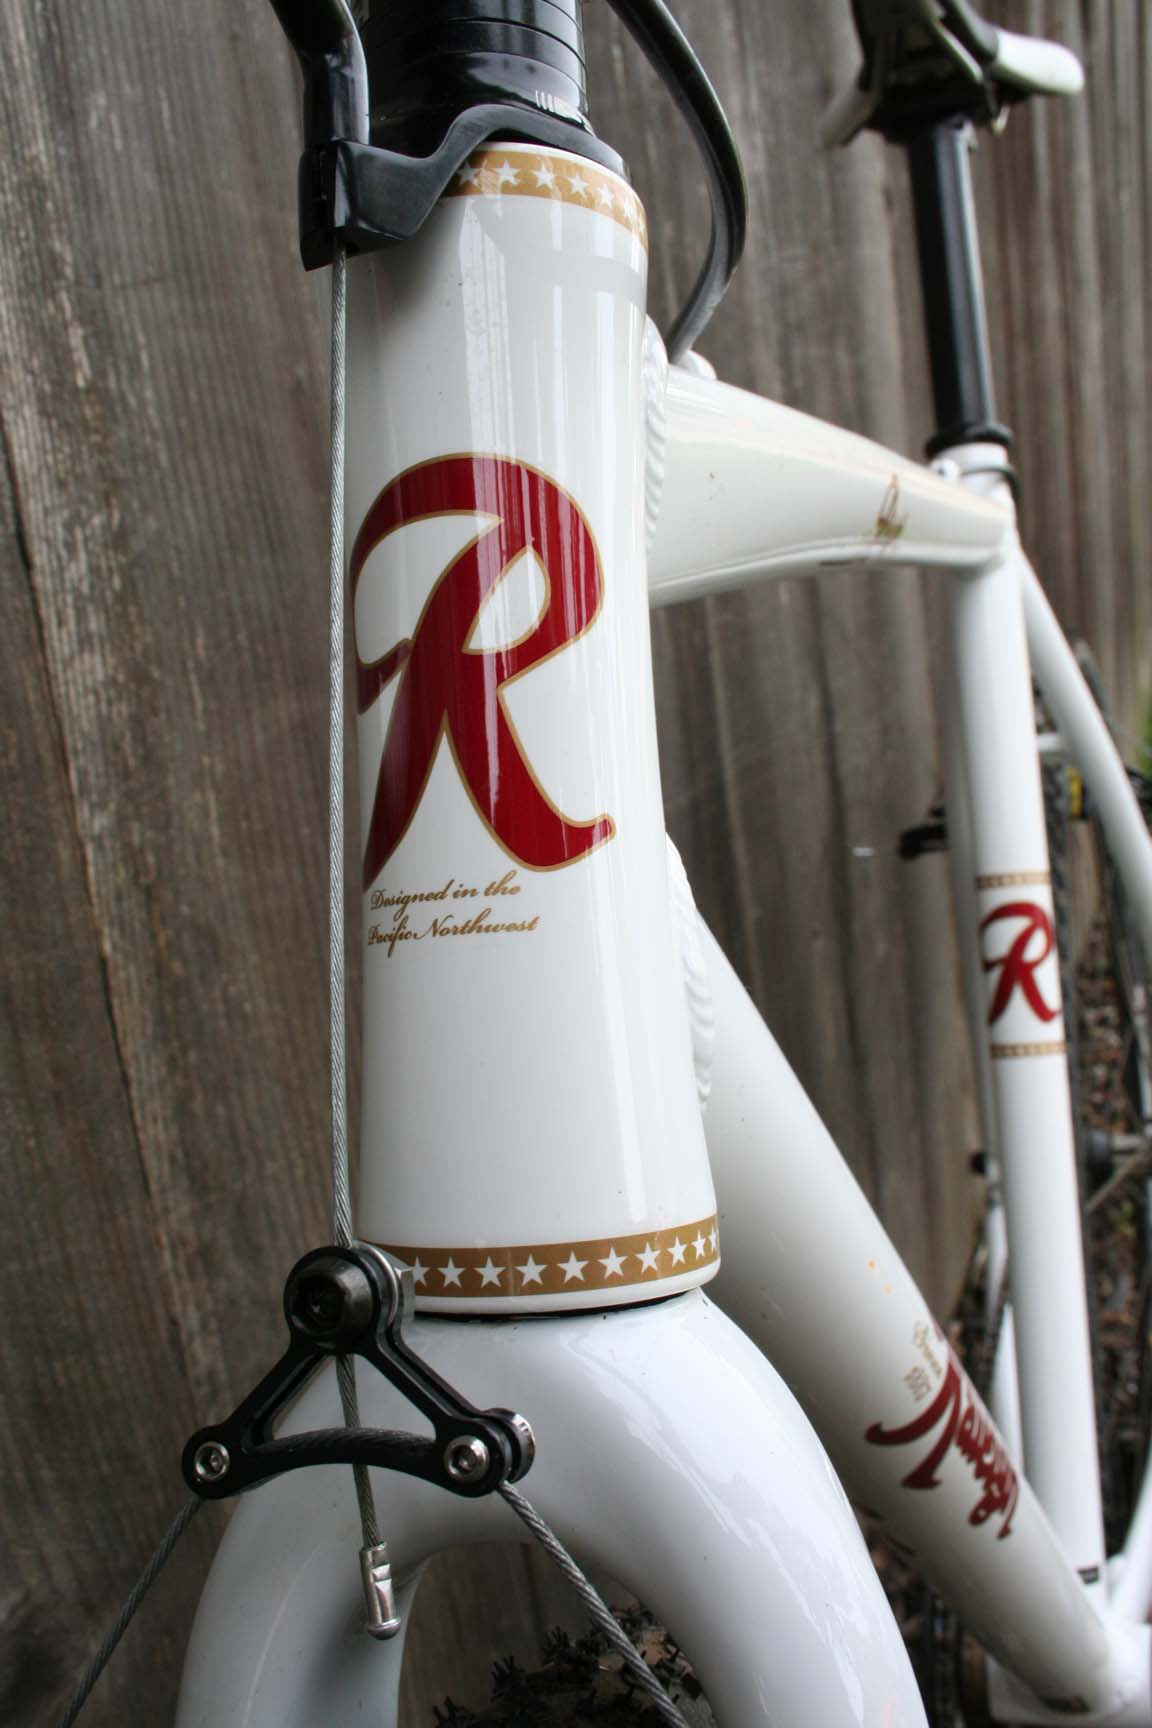 The Rainier-inspired singlespeed was a big hit